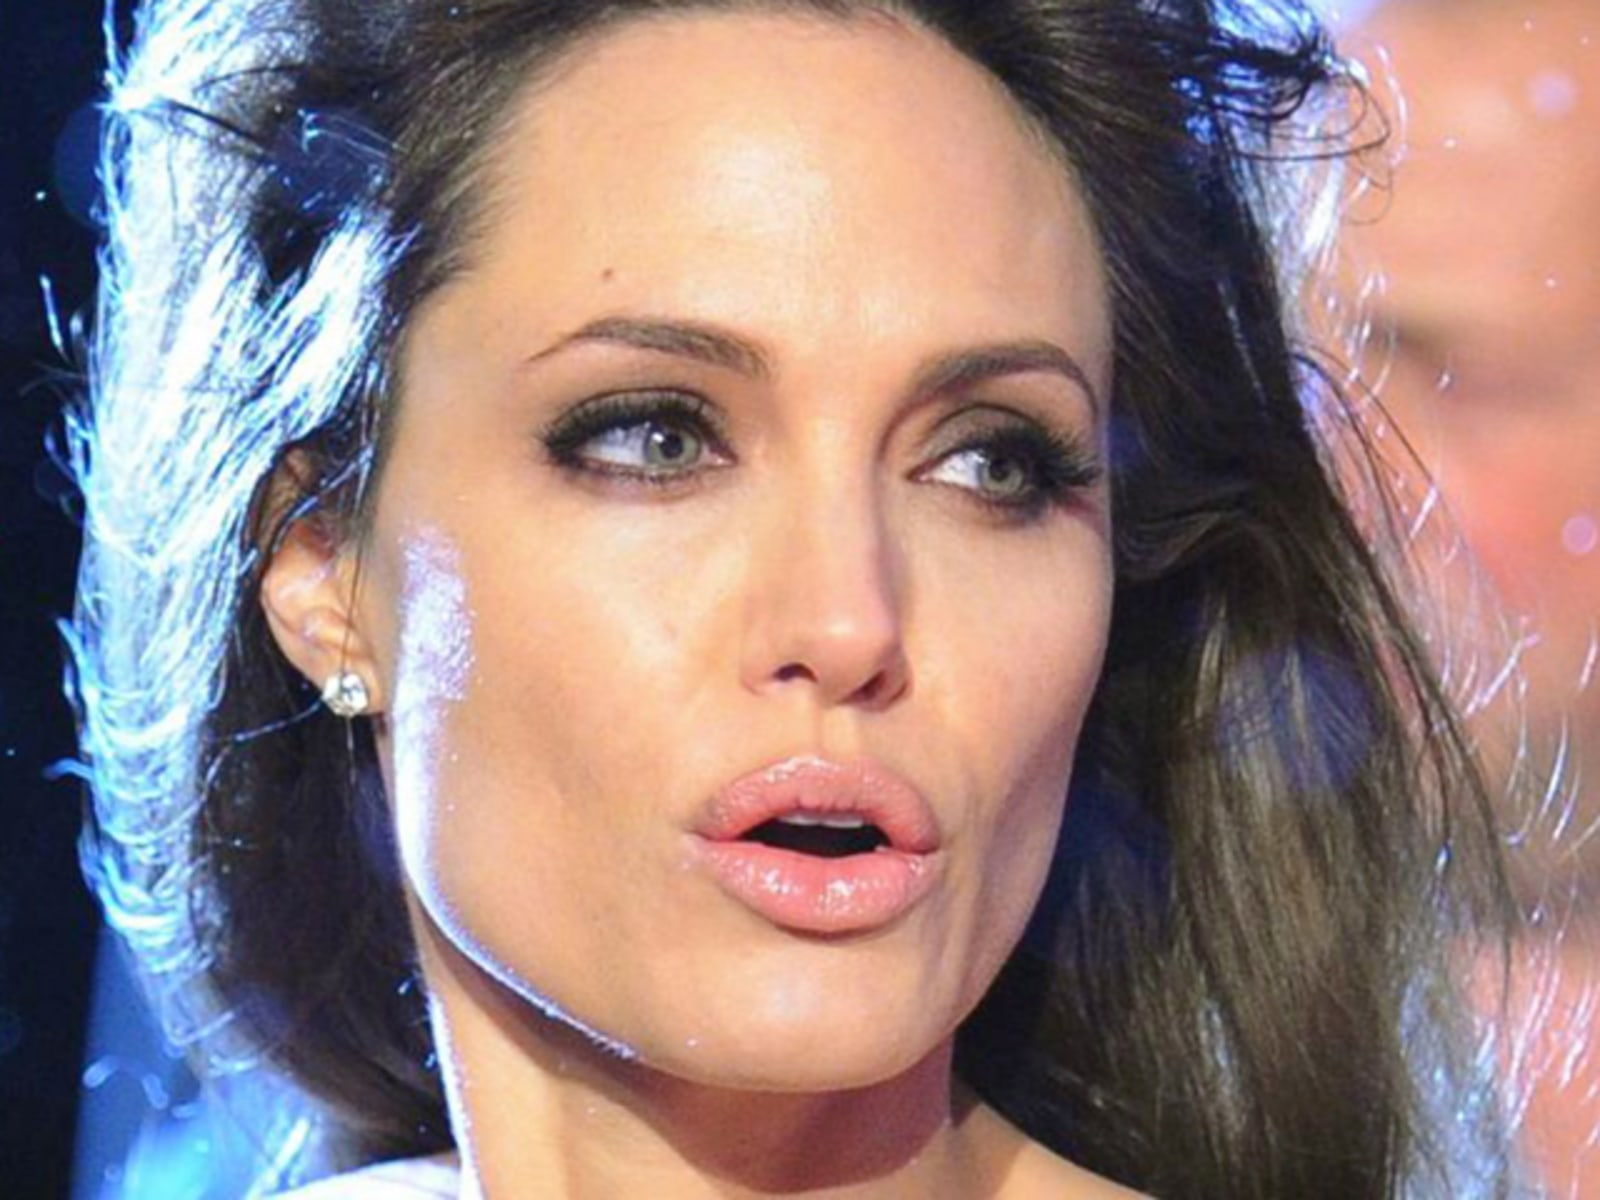 Image: Angelina Jolie on the red carpet at 'The Tourist' premiere in Germany